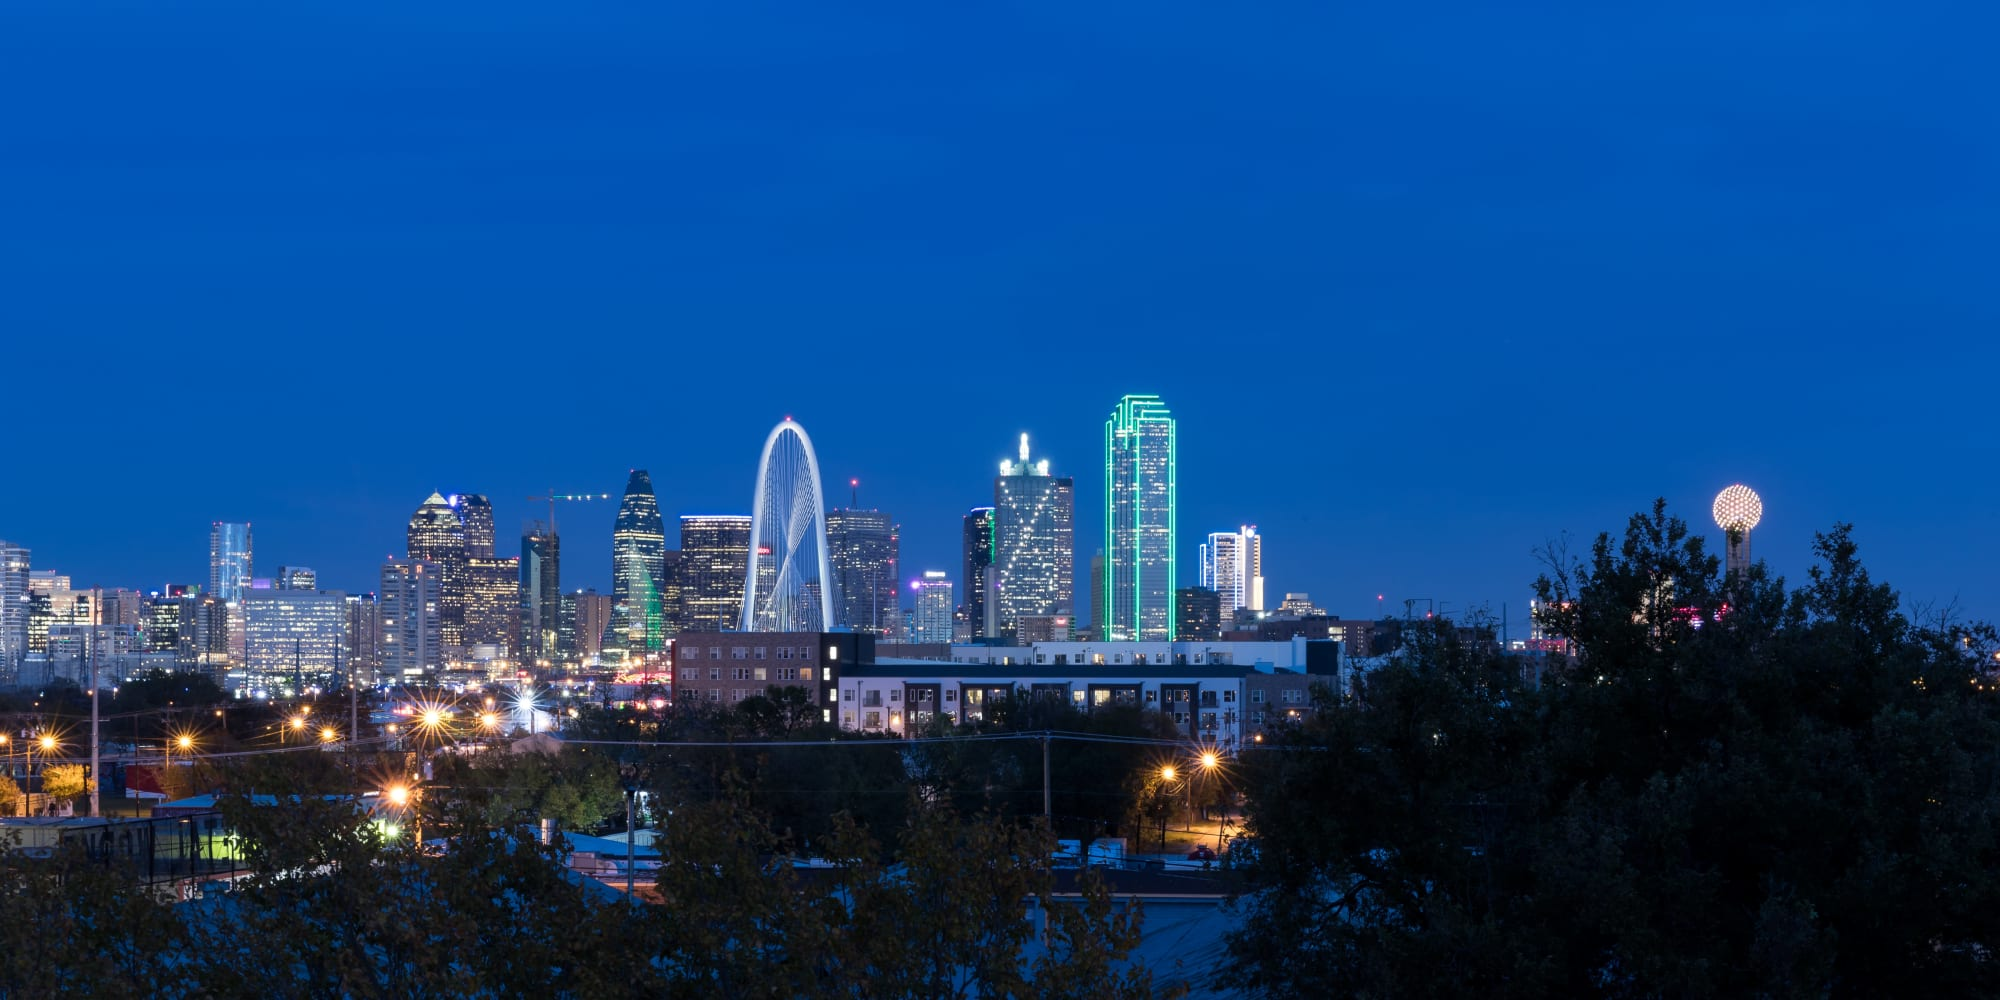 Night image of the city from apartments Alta Trinity Green in Dallas. TX